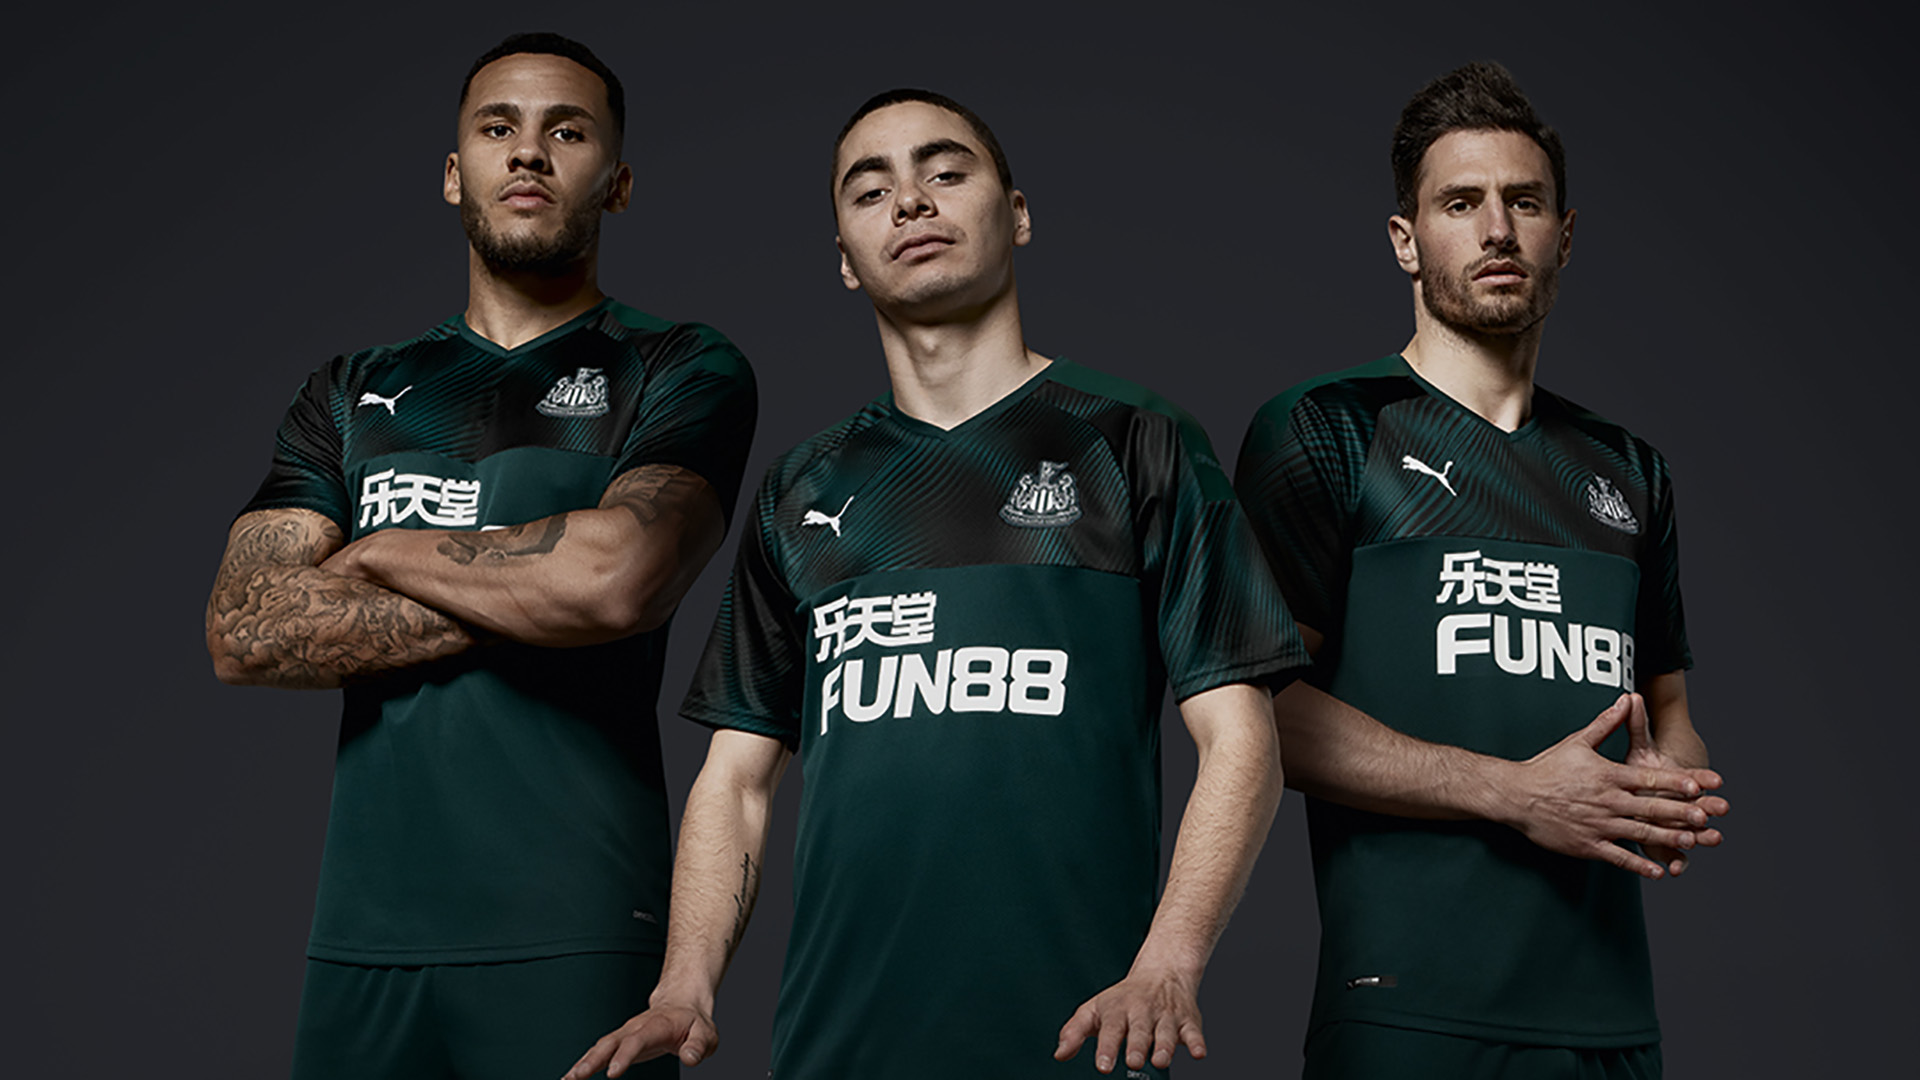 Concept Kits: What If A Different Brand Got The Ireland Gig